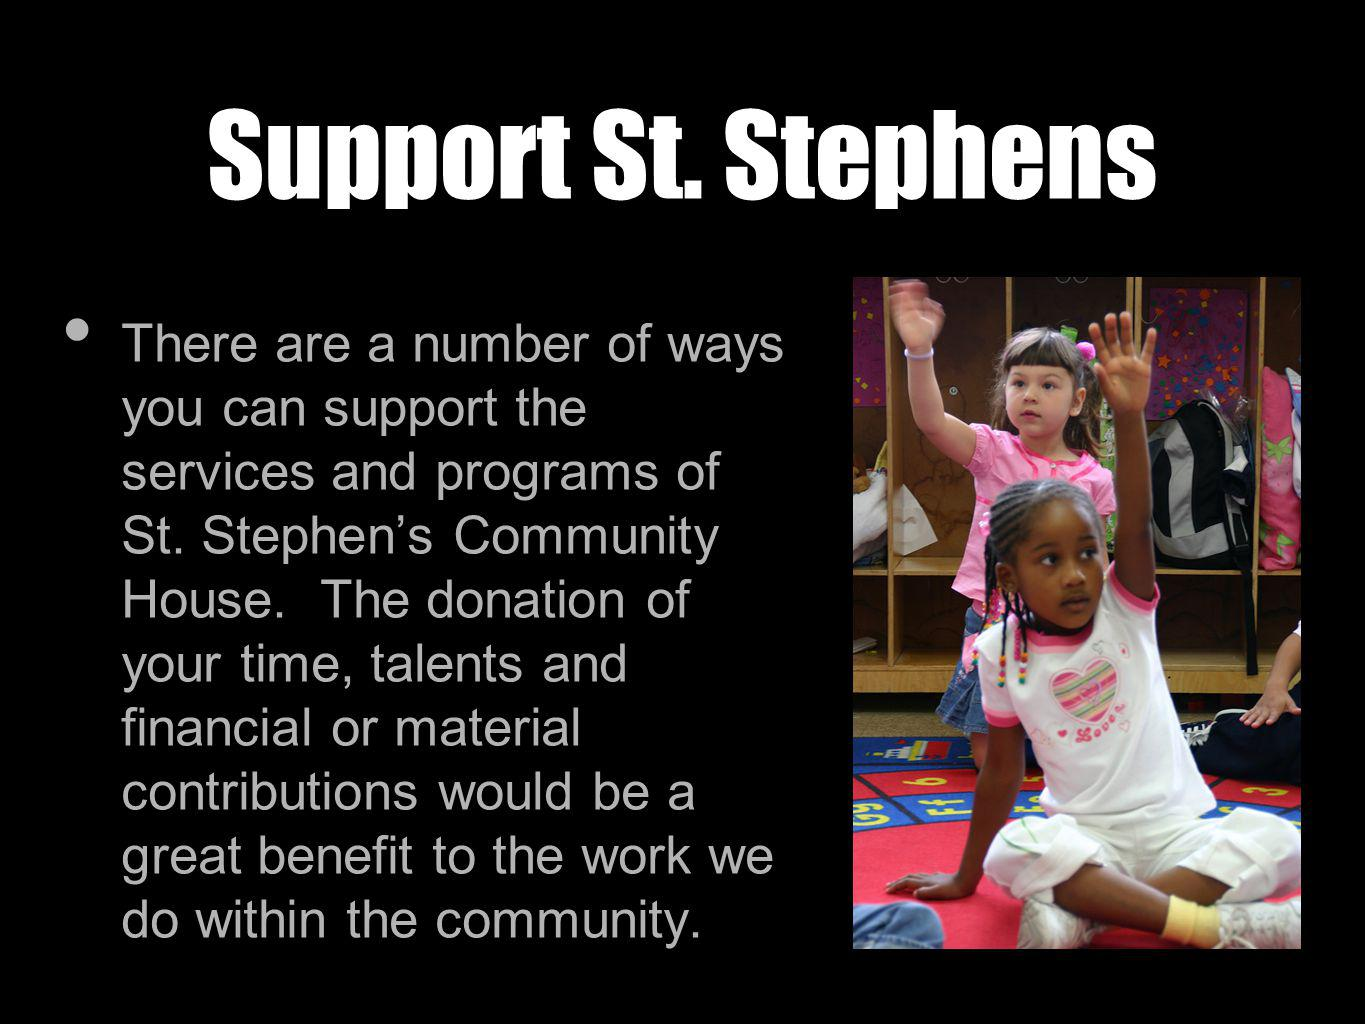 Support St. Stephens There are a number of ways you can support the services and programs of St.